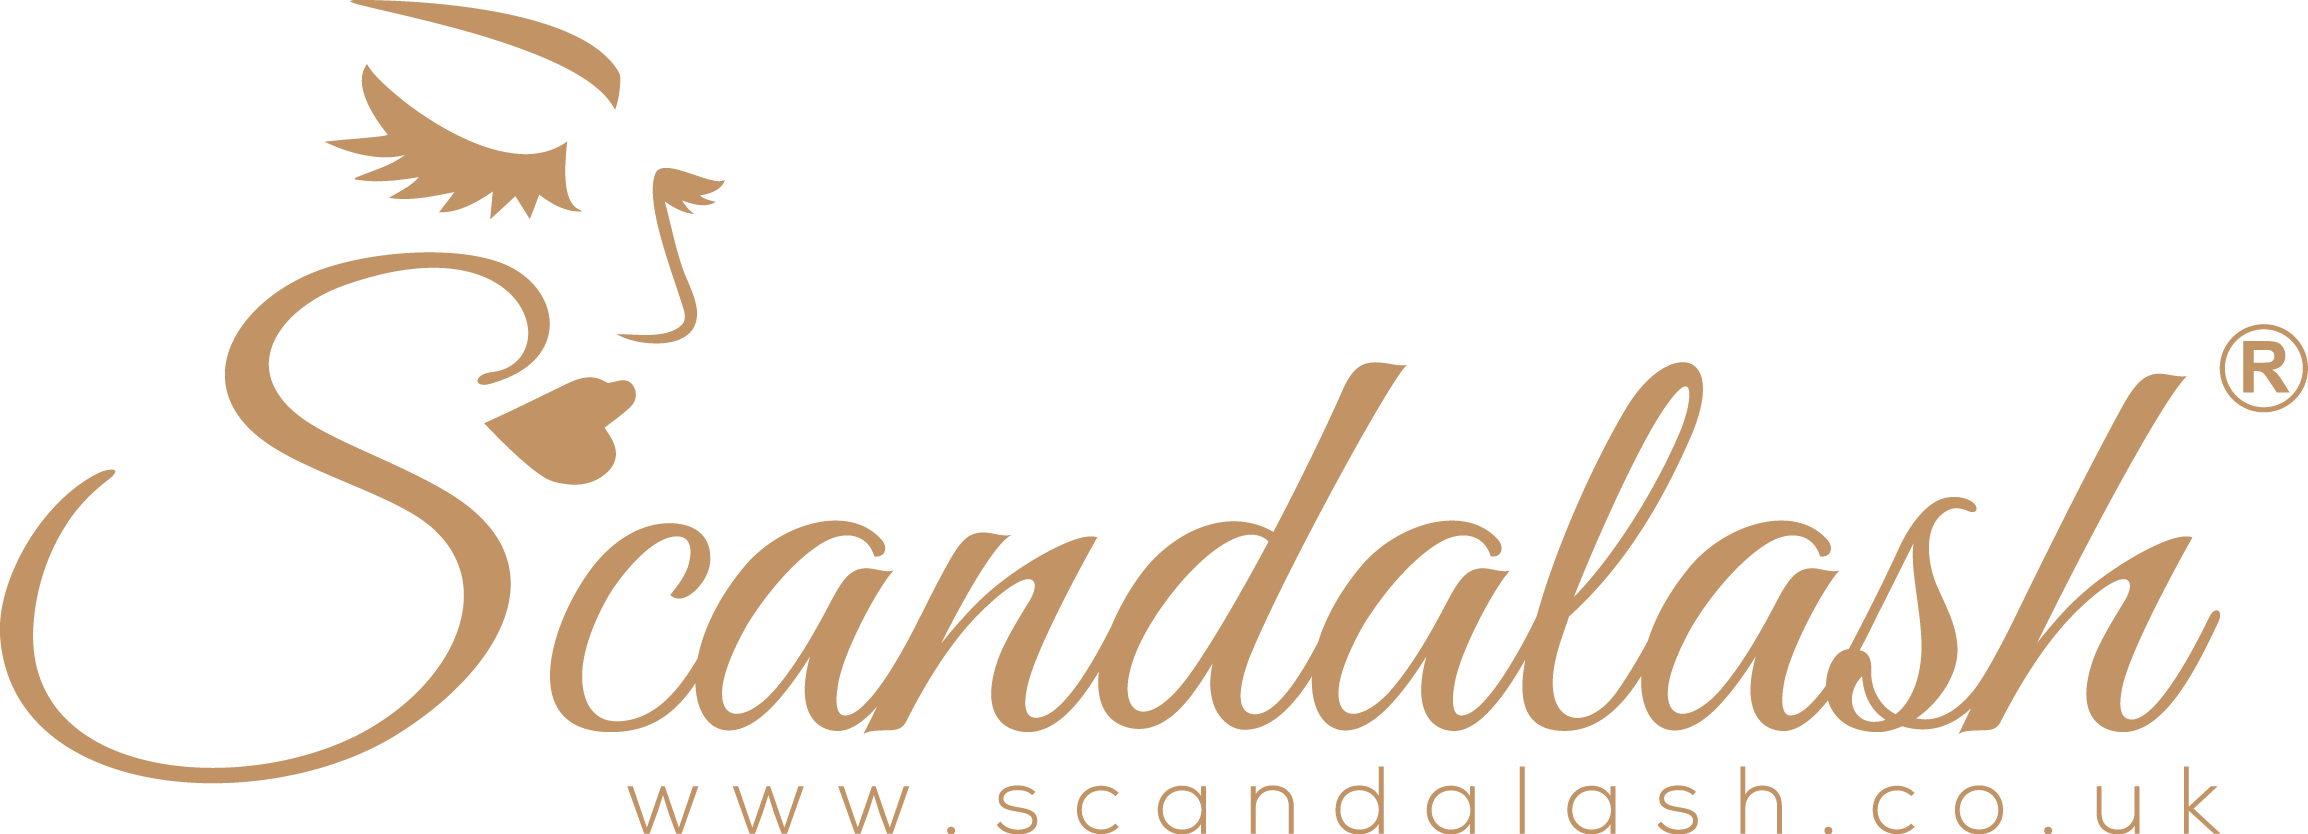 Scandalash Lashes and Brows